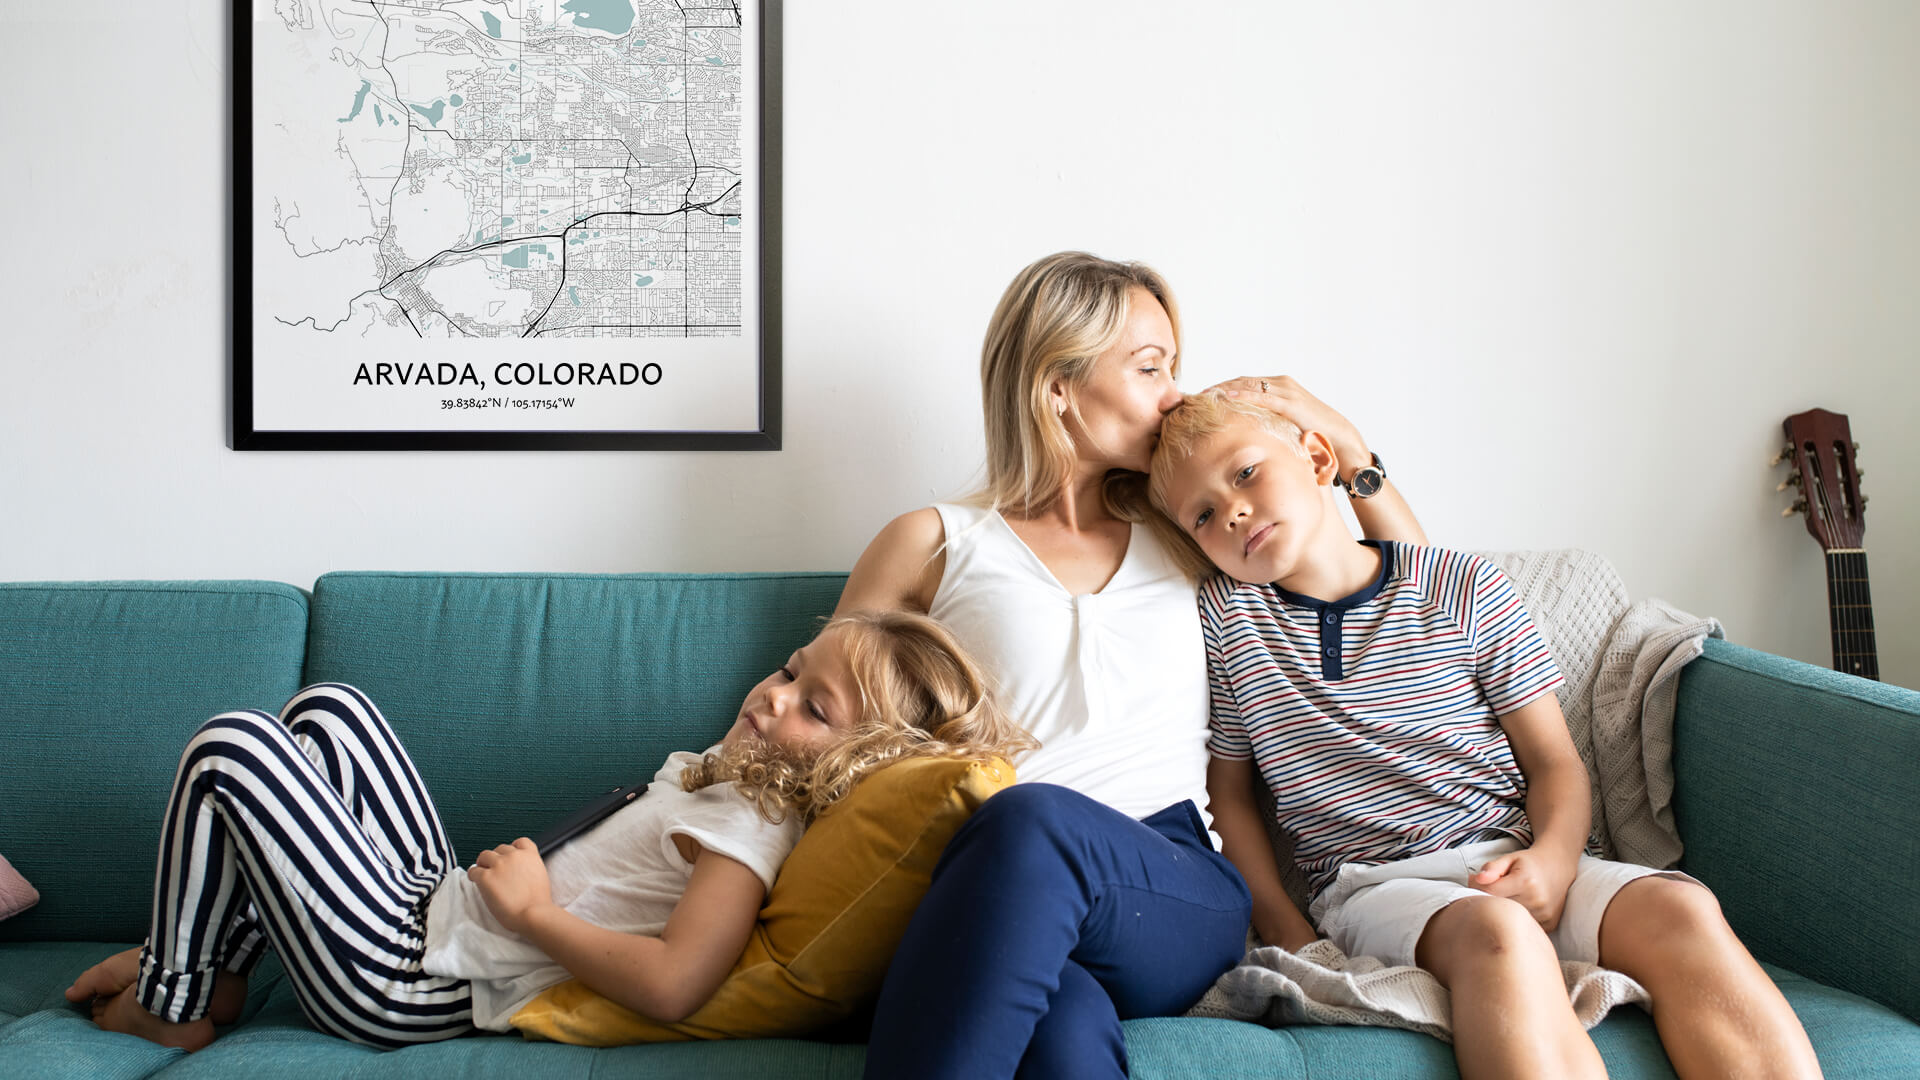 Arvada map poster